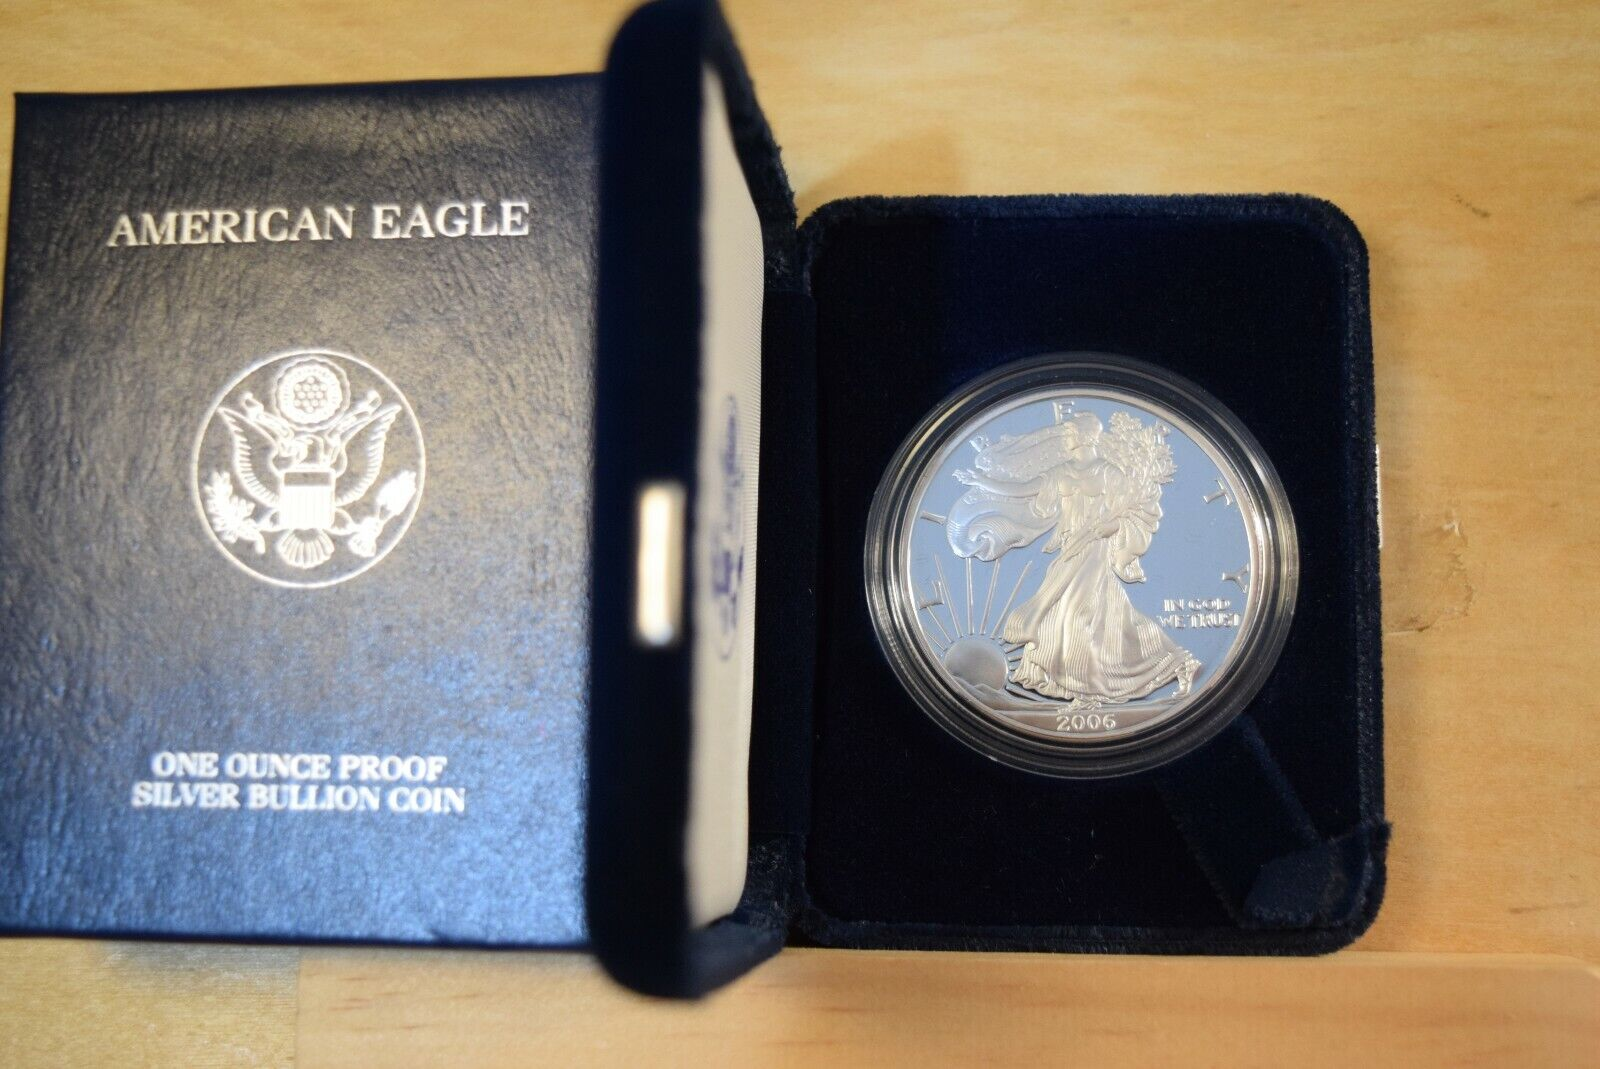 2006 American Eagle Silver Dollar PROOF With ORIGINAL US MINT BOX  - $49.99